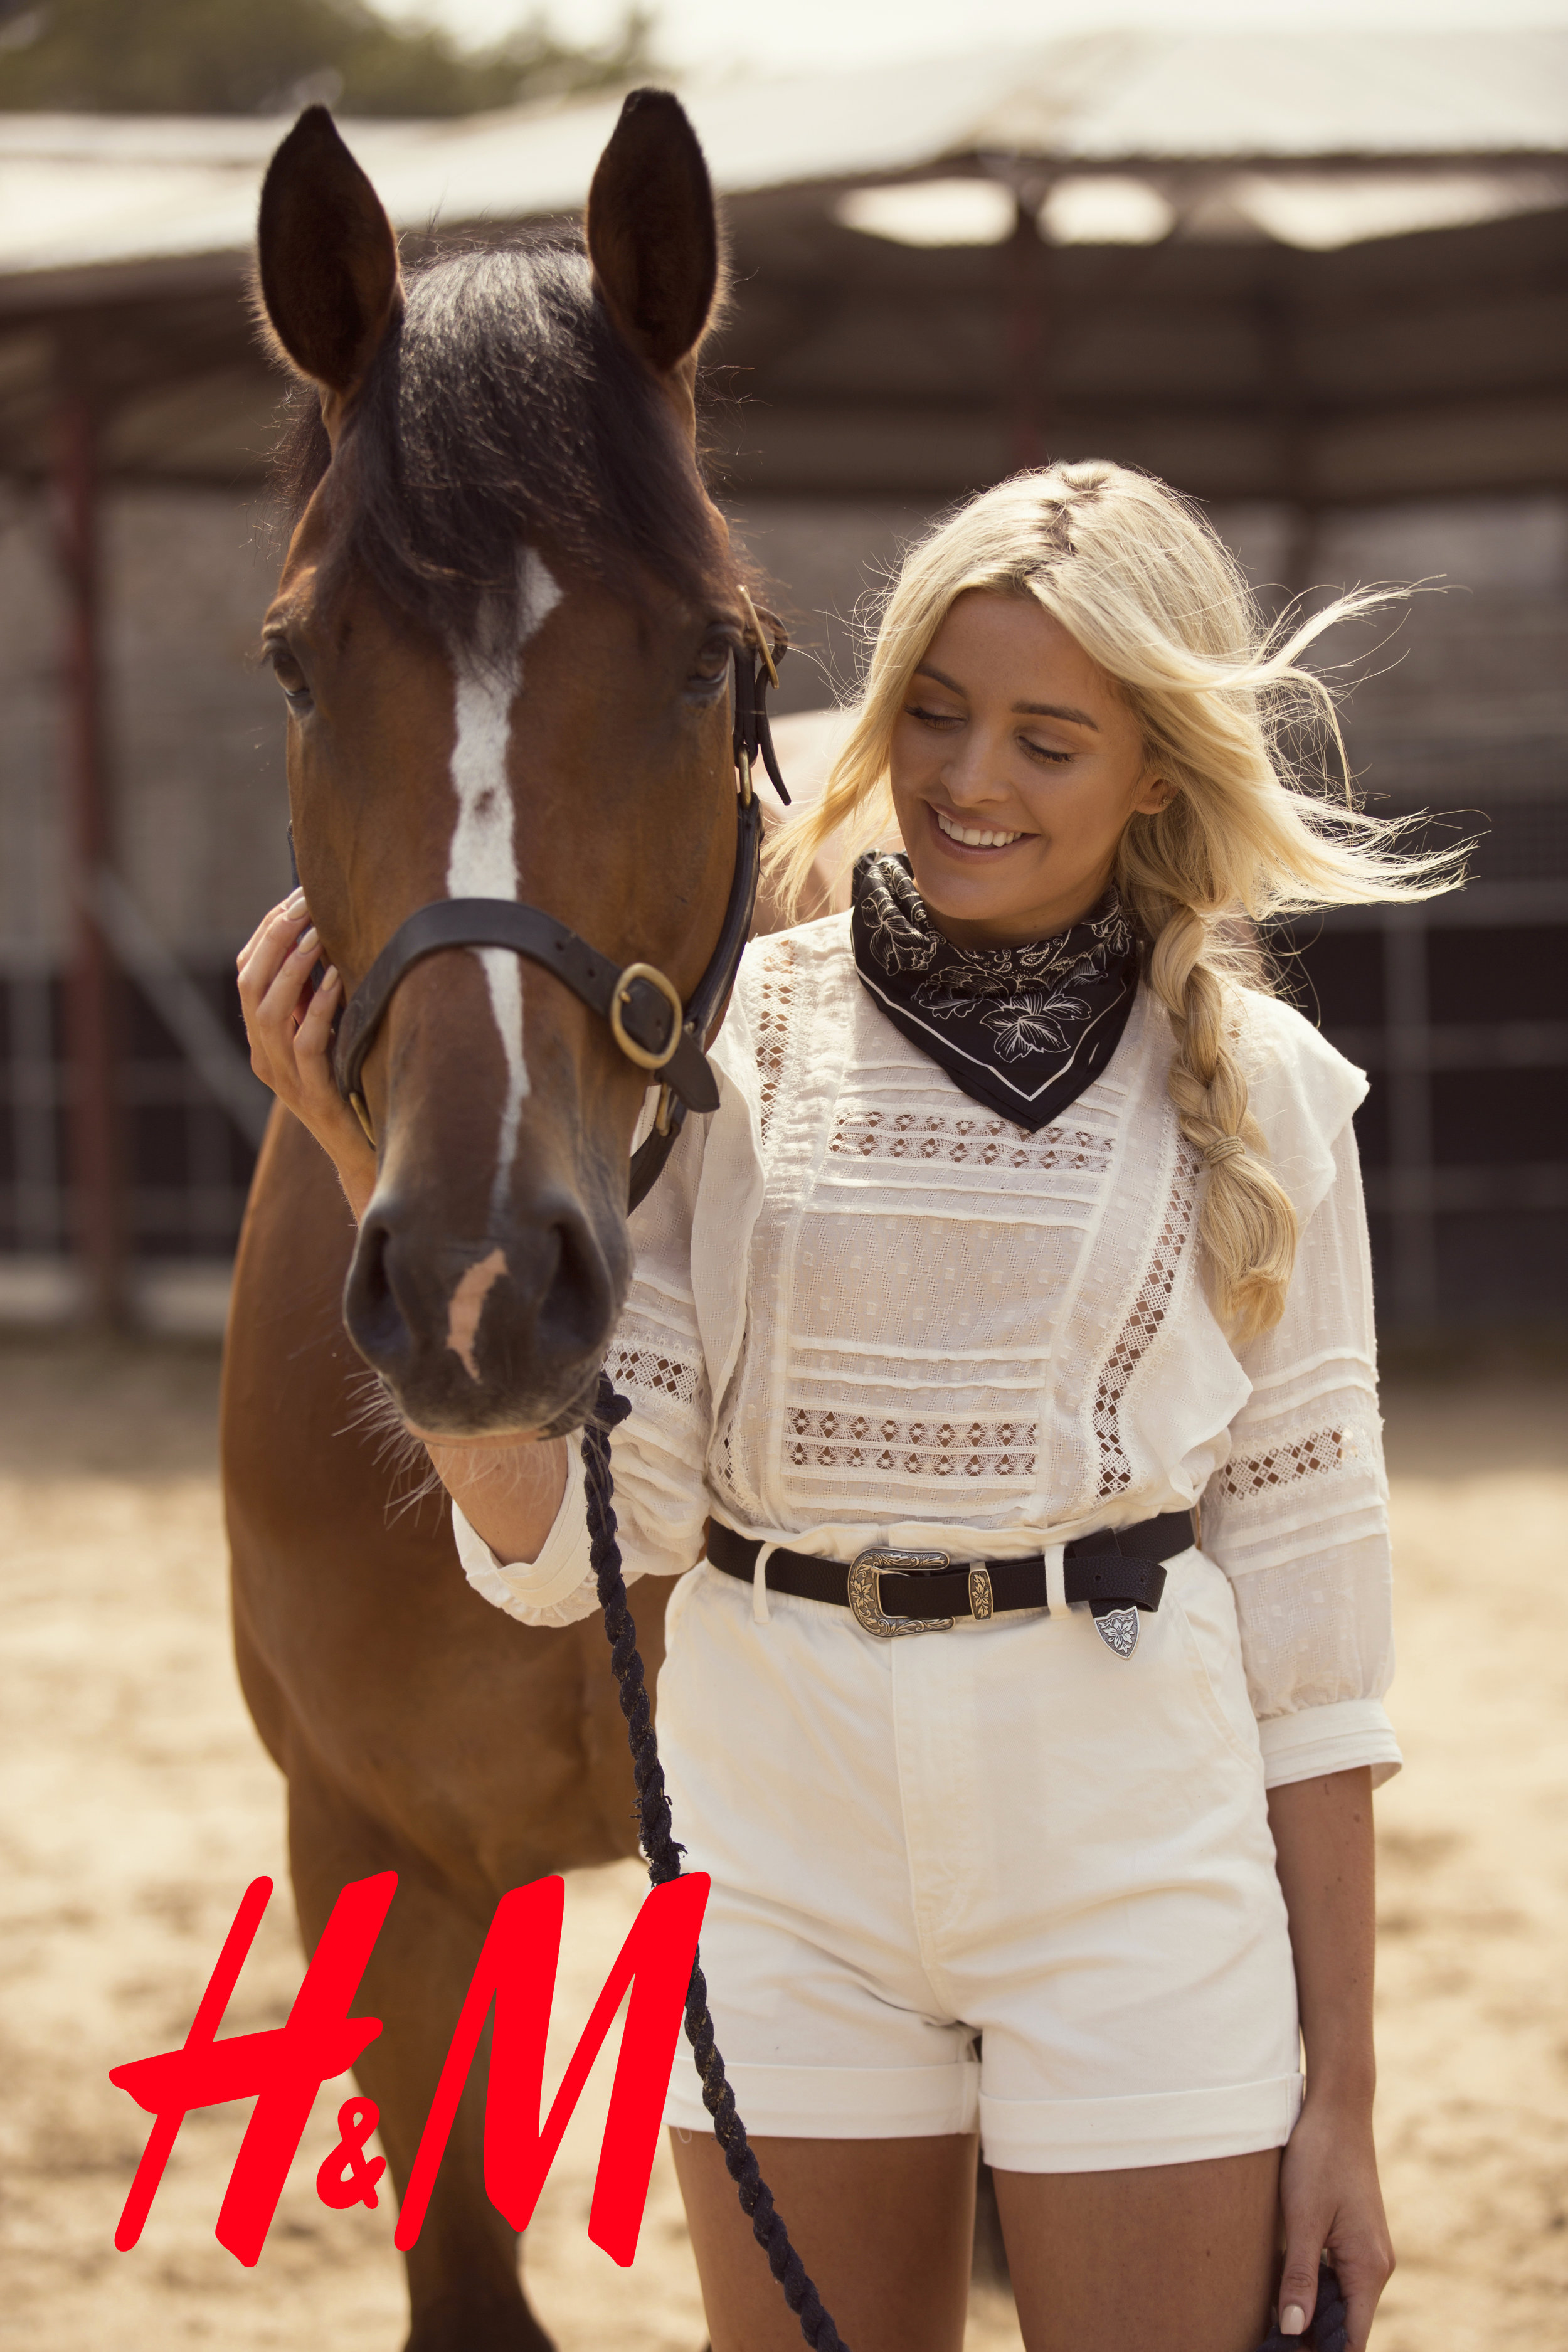 H & M Louise Cooney Campaign 2019